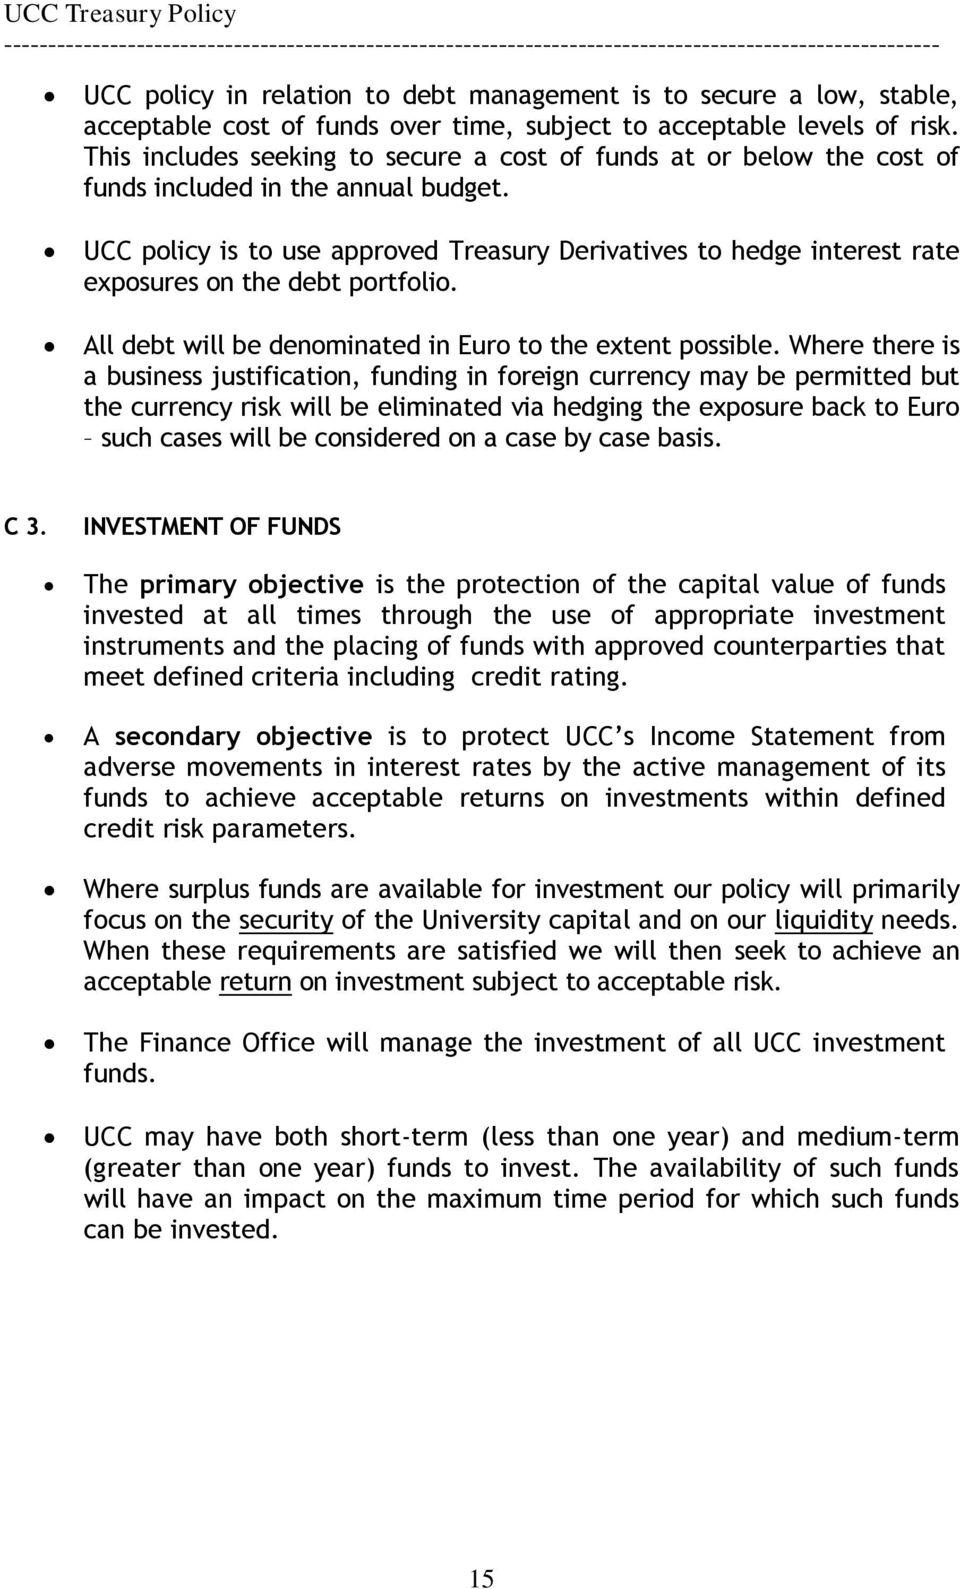 UCC policy is to use approved Treasury Derivatives to hedge interest rate exposures on the debt portfolio. All debt will be denominated in Euro to the extent possible.